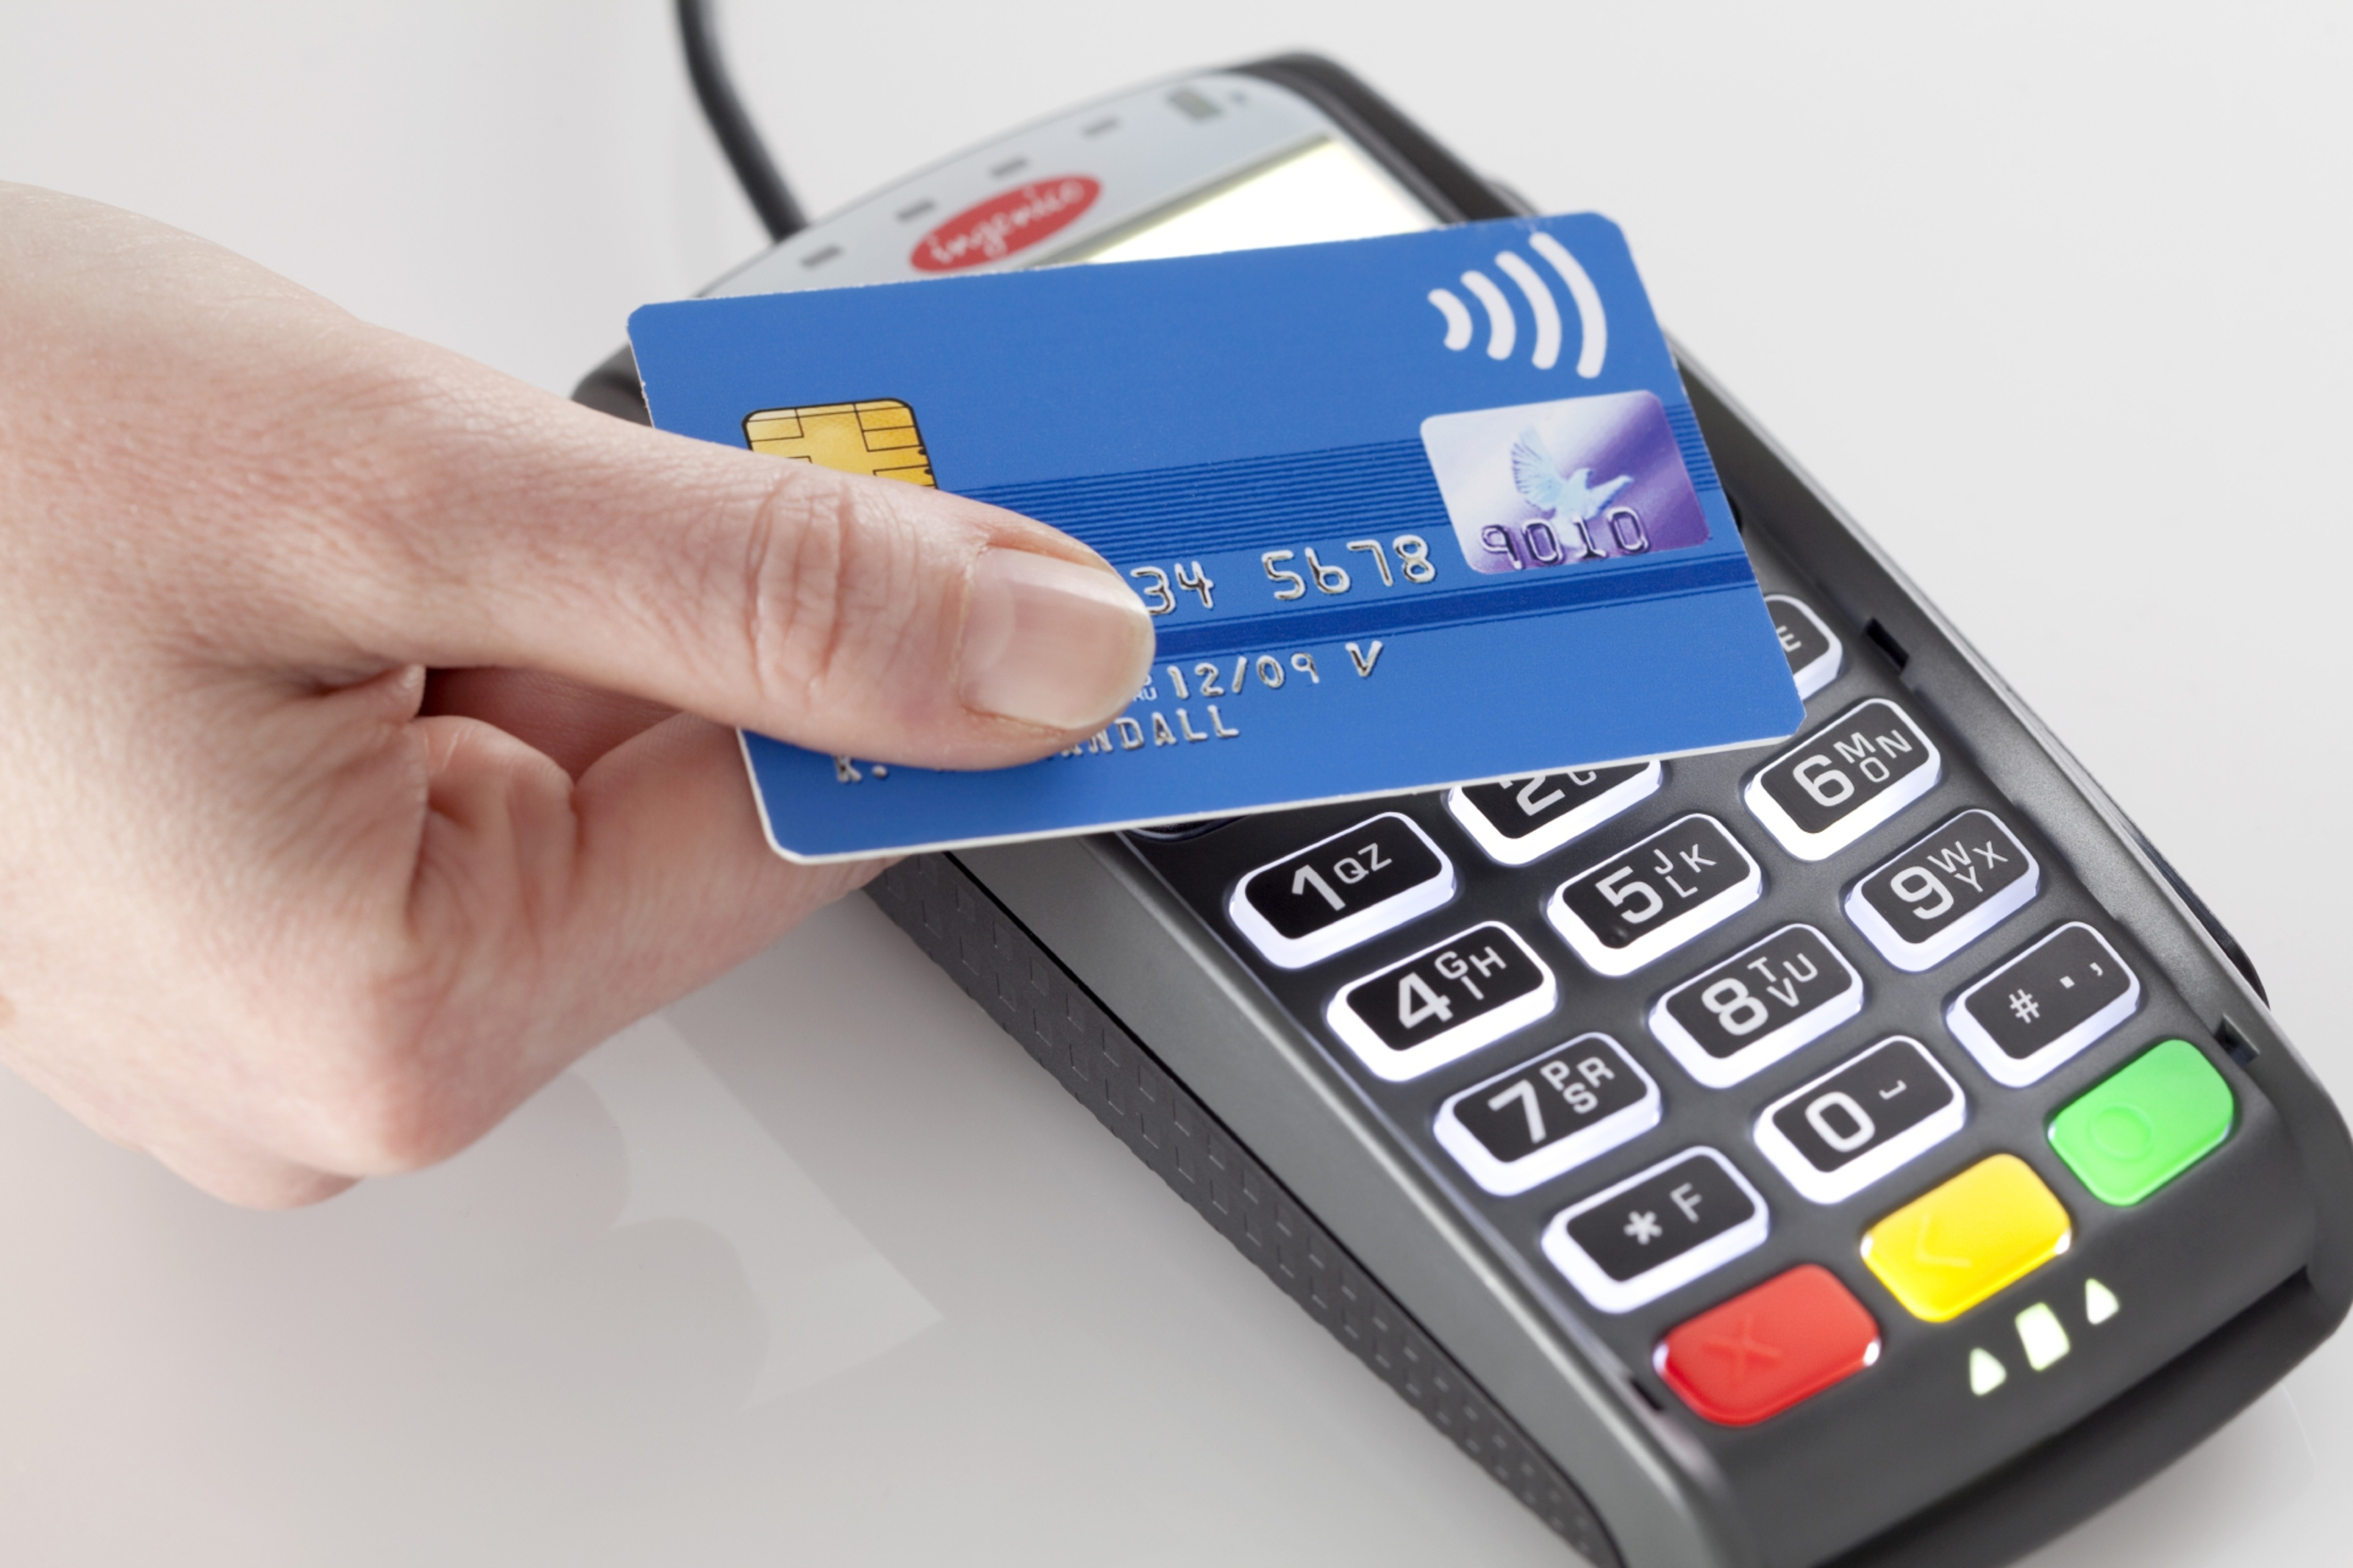 Ingenico's contactless card ticketing terminal